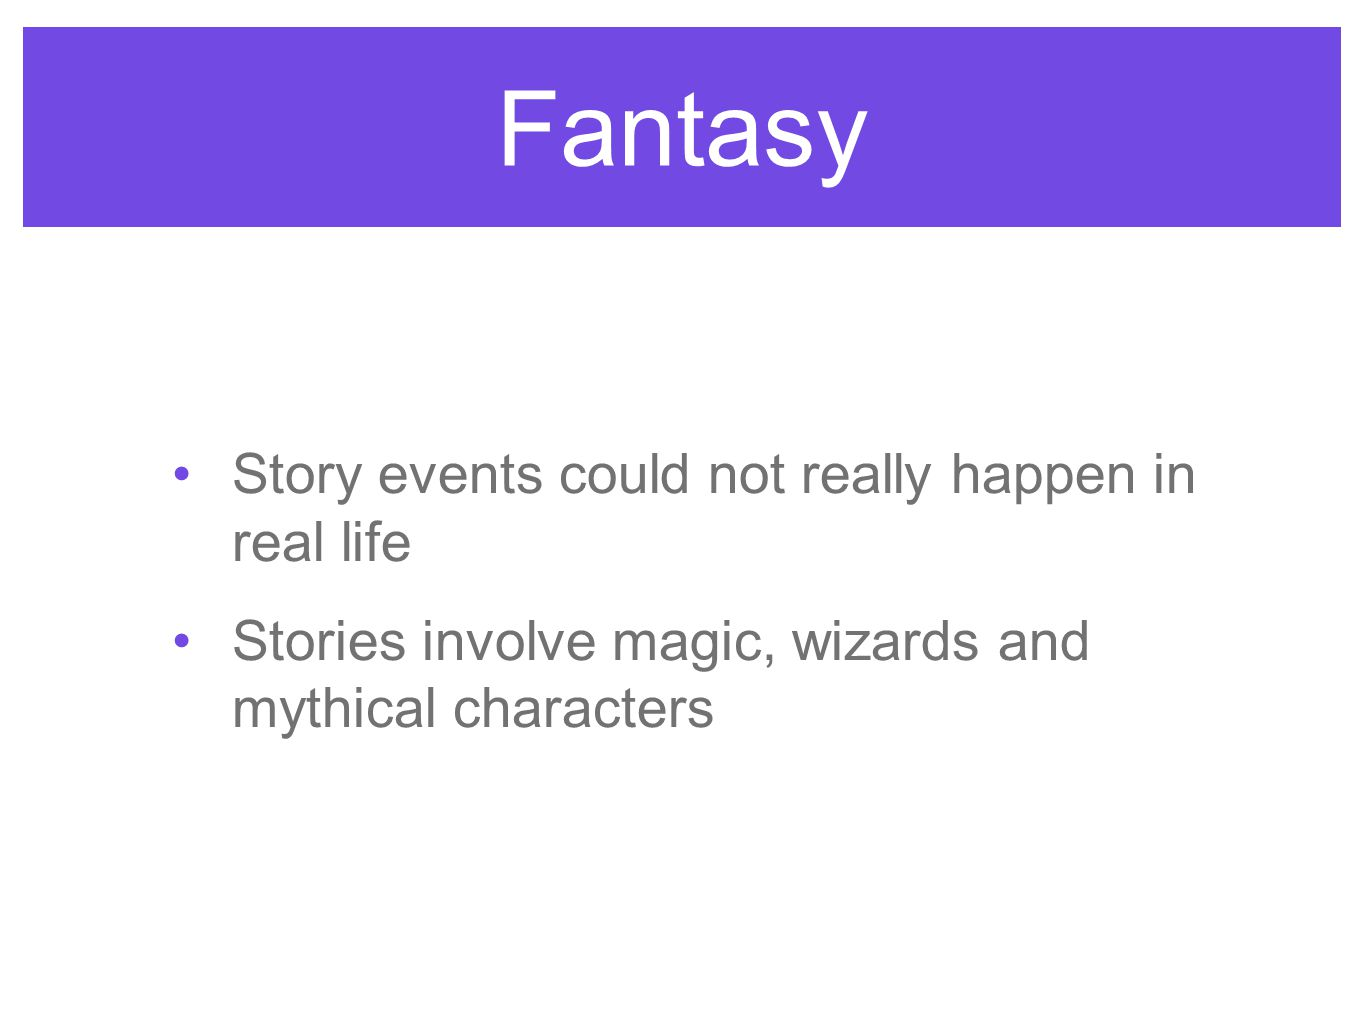 Fantasy Story events could not really happen in real life